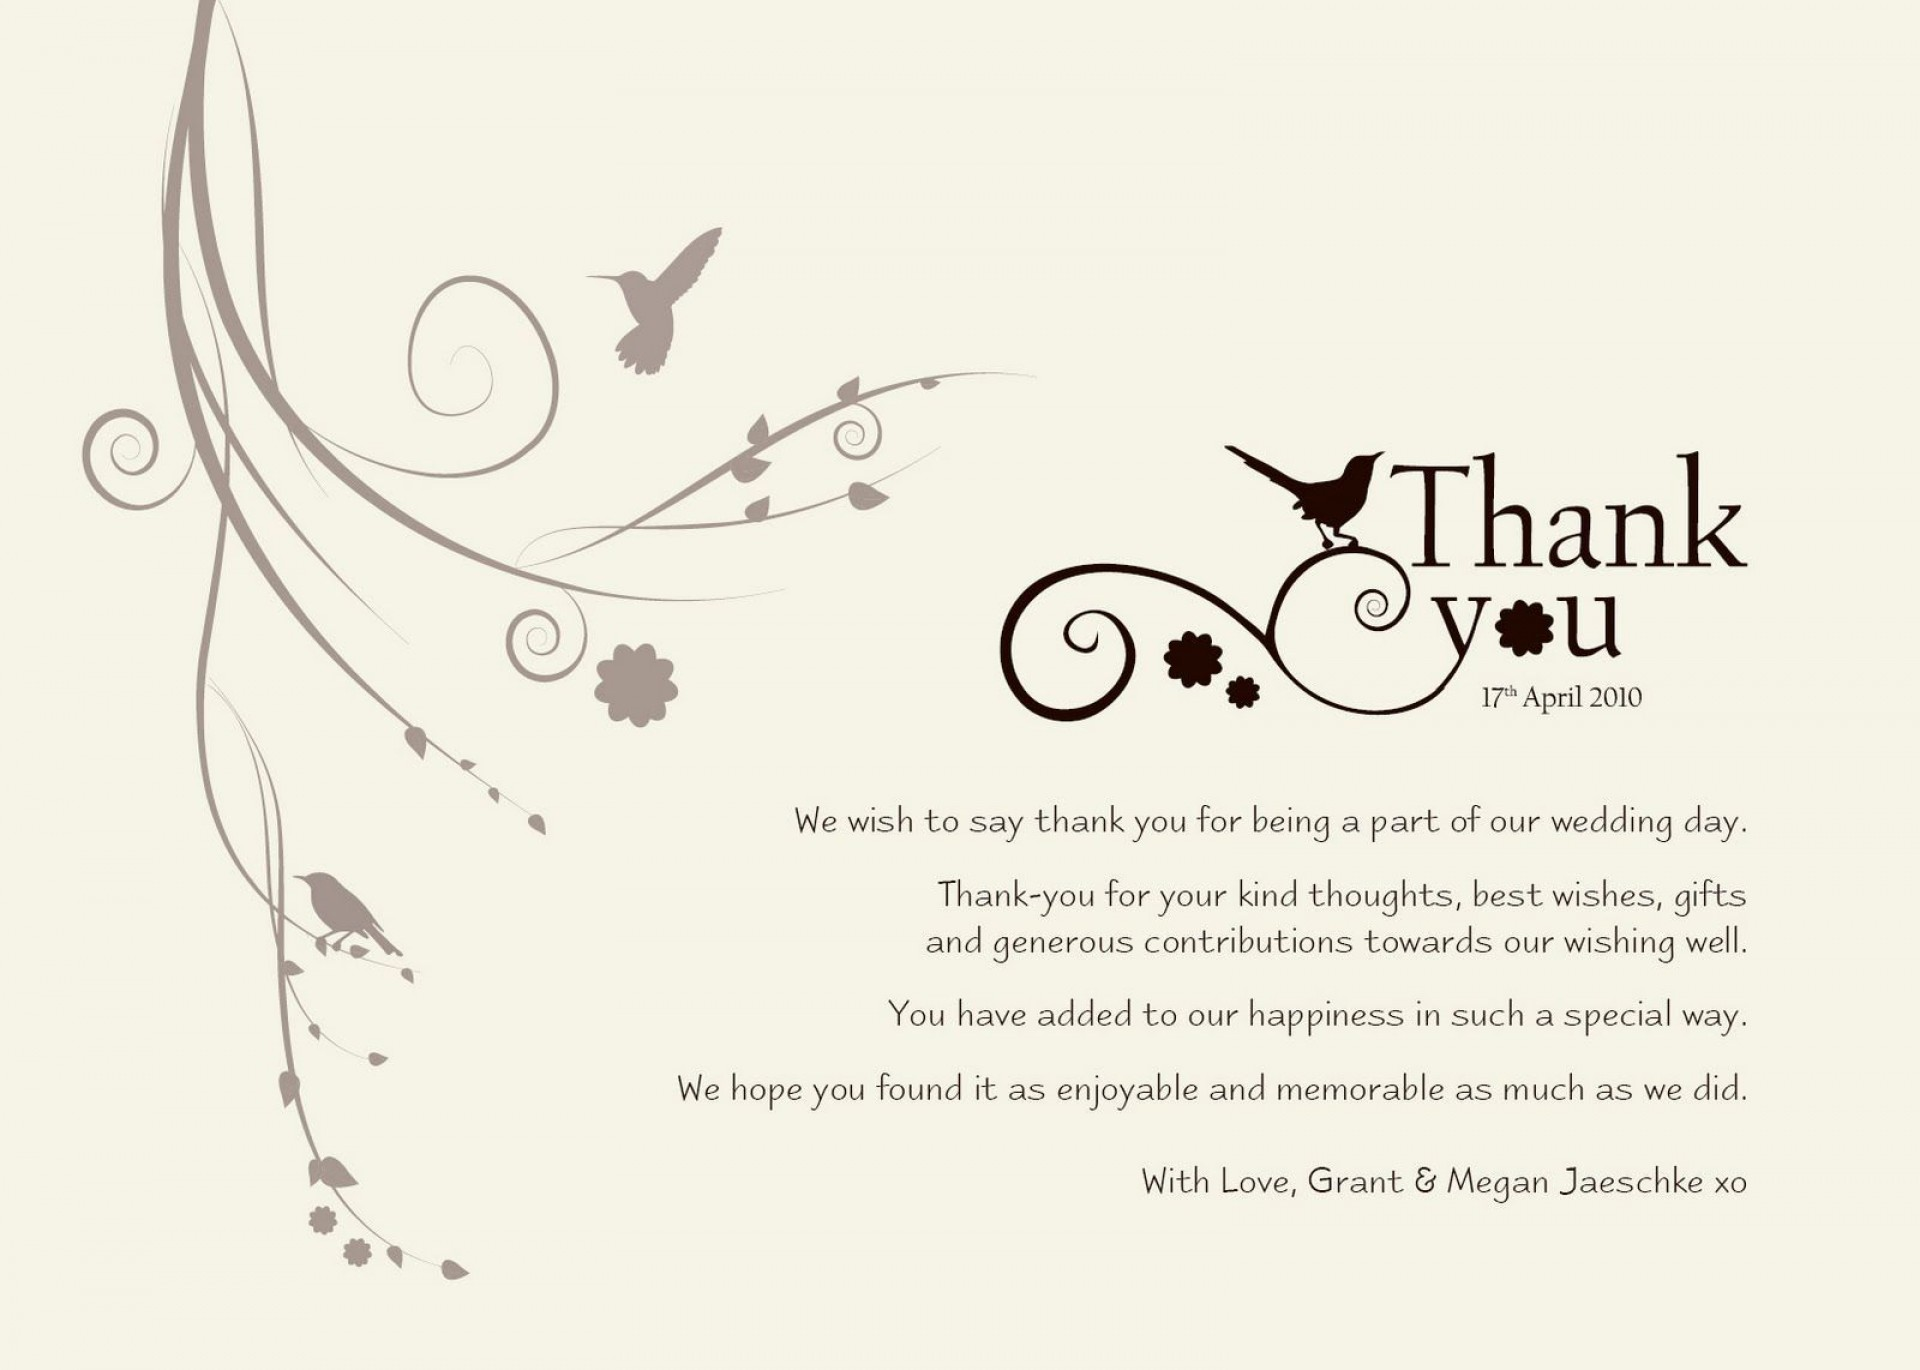 004 Breathtaking Wedding Thank You Note Template Inspiration  Templates Shower Card Etsy Bridal Format1920